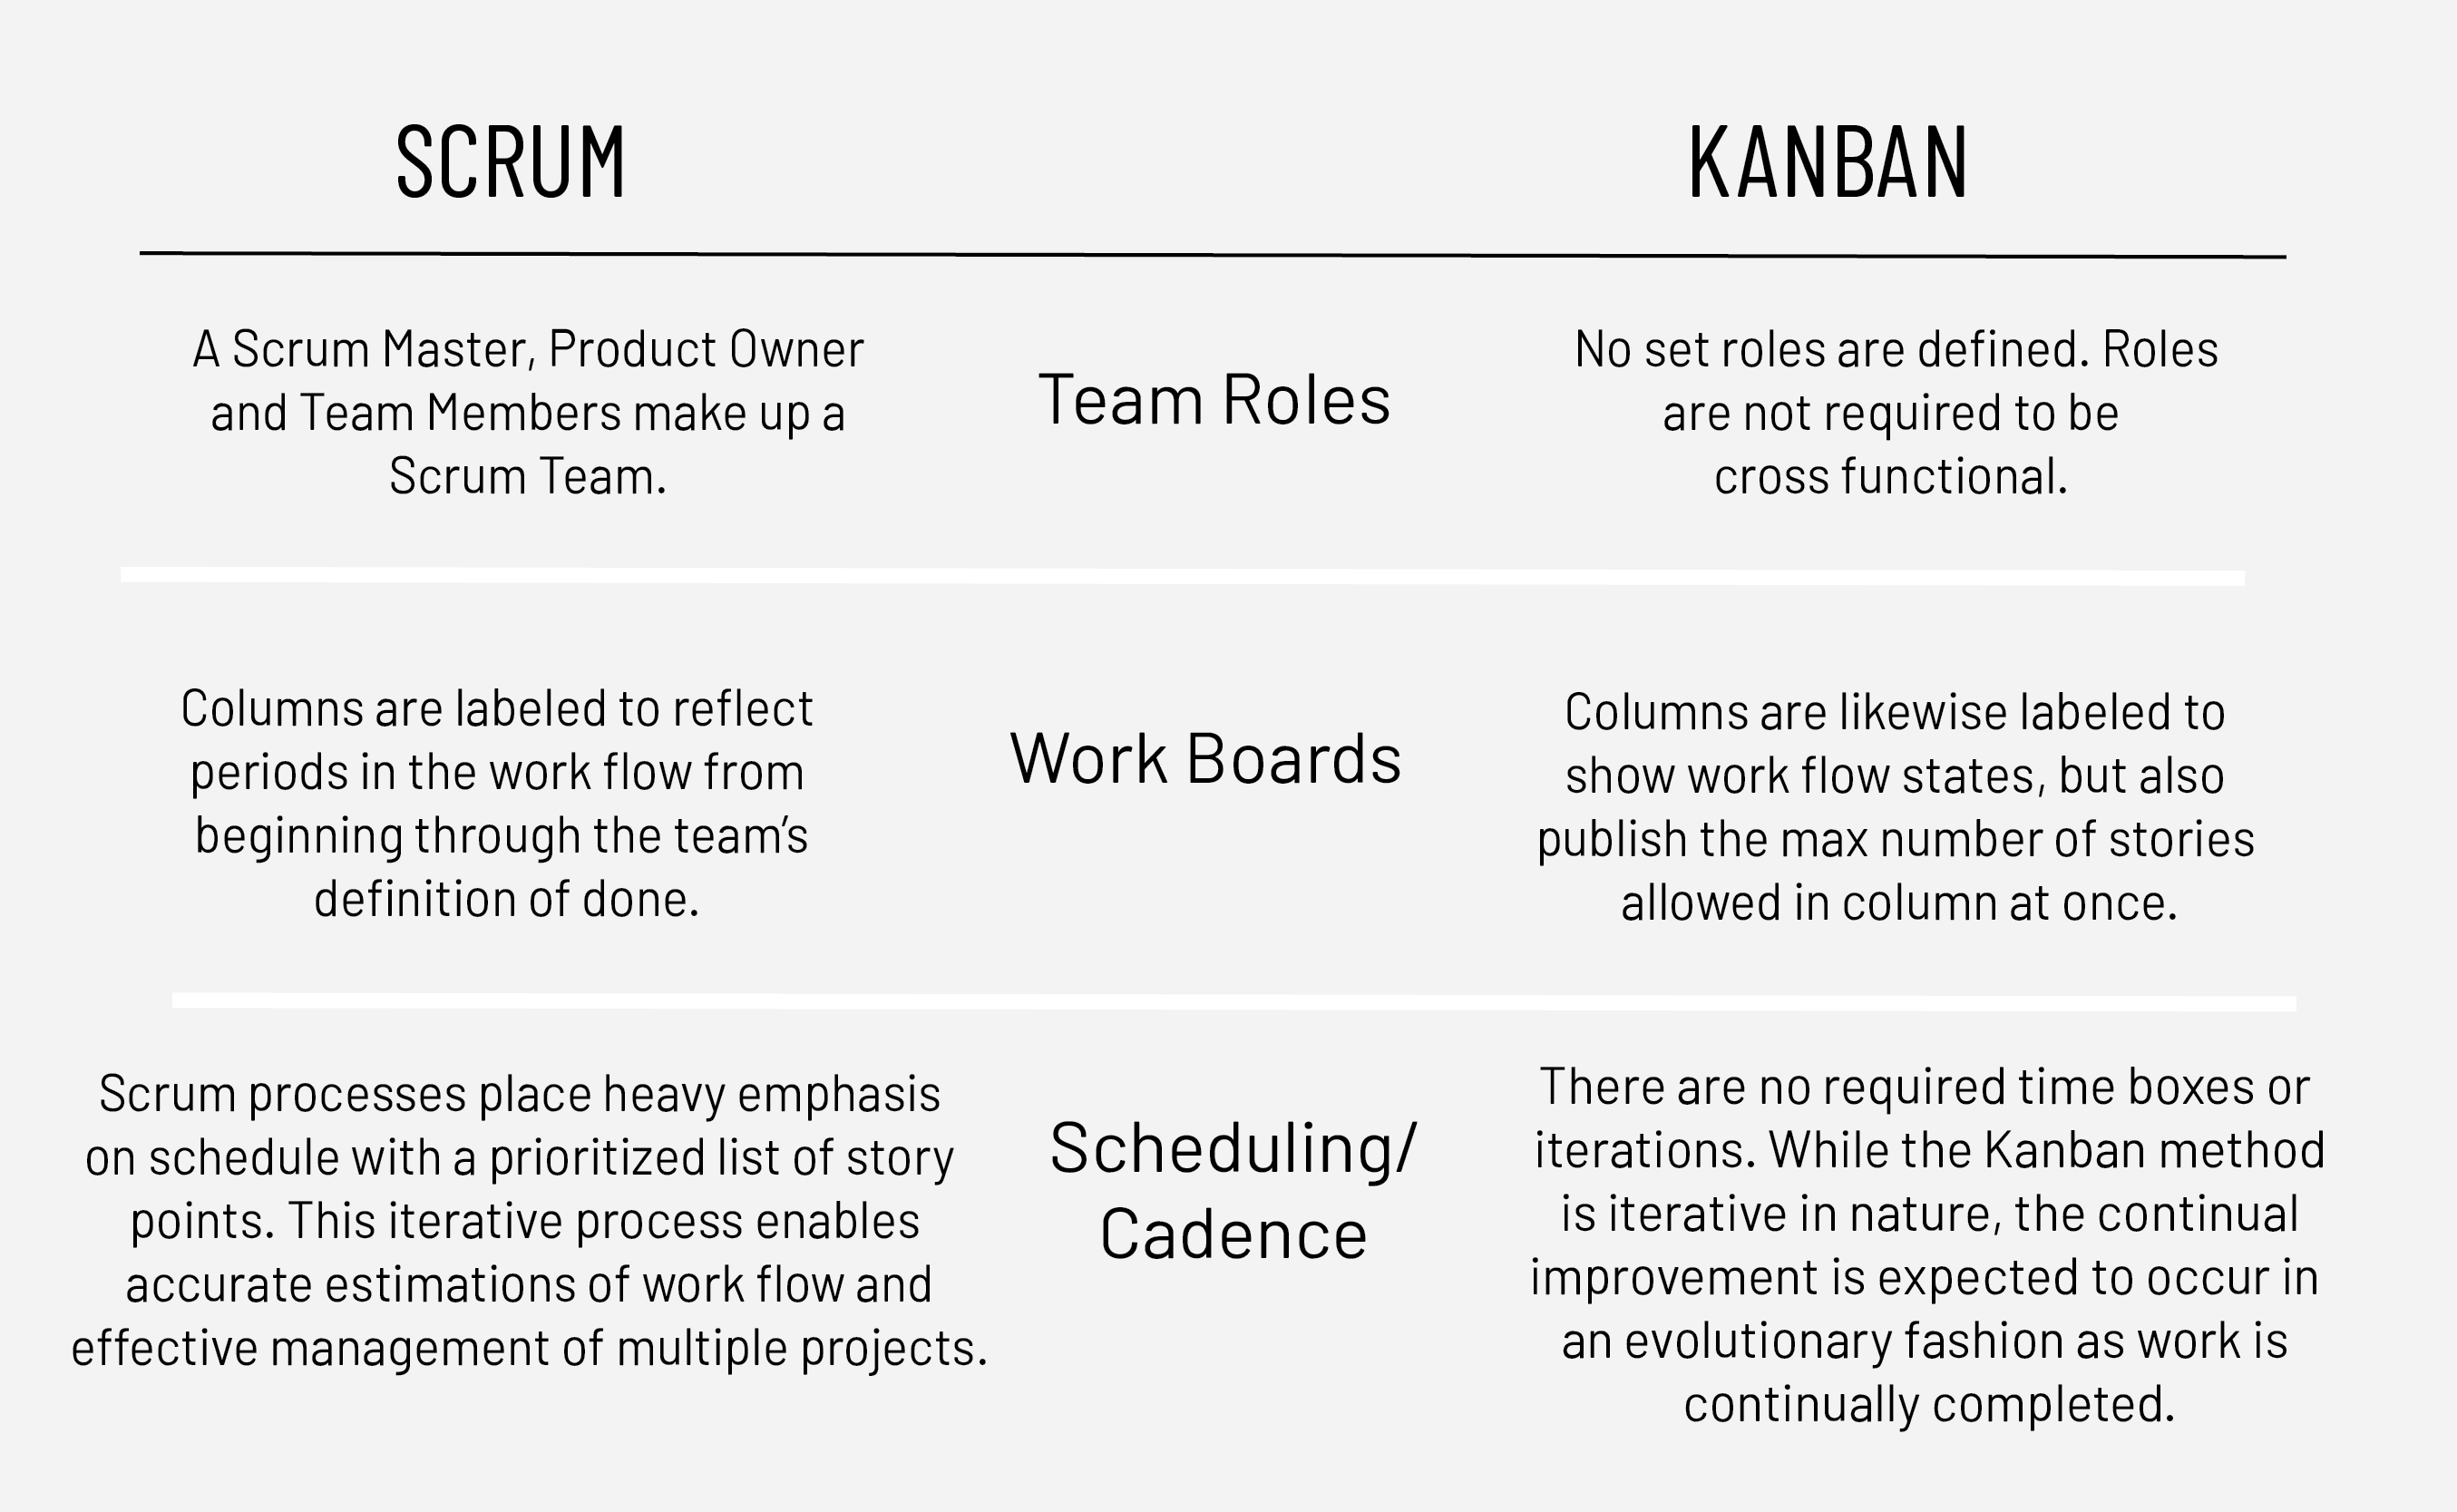 3 Differences Between Scrum and Kanban You Need to Know